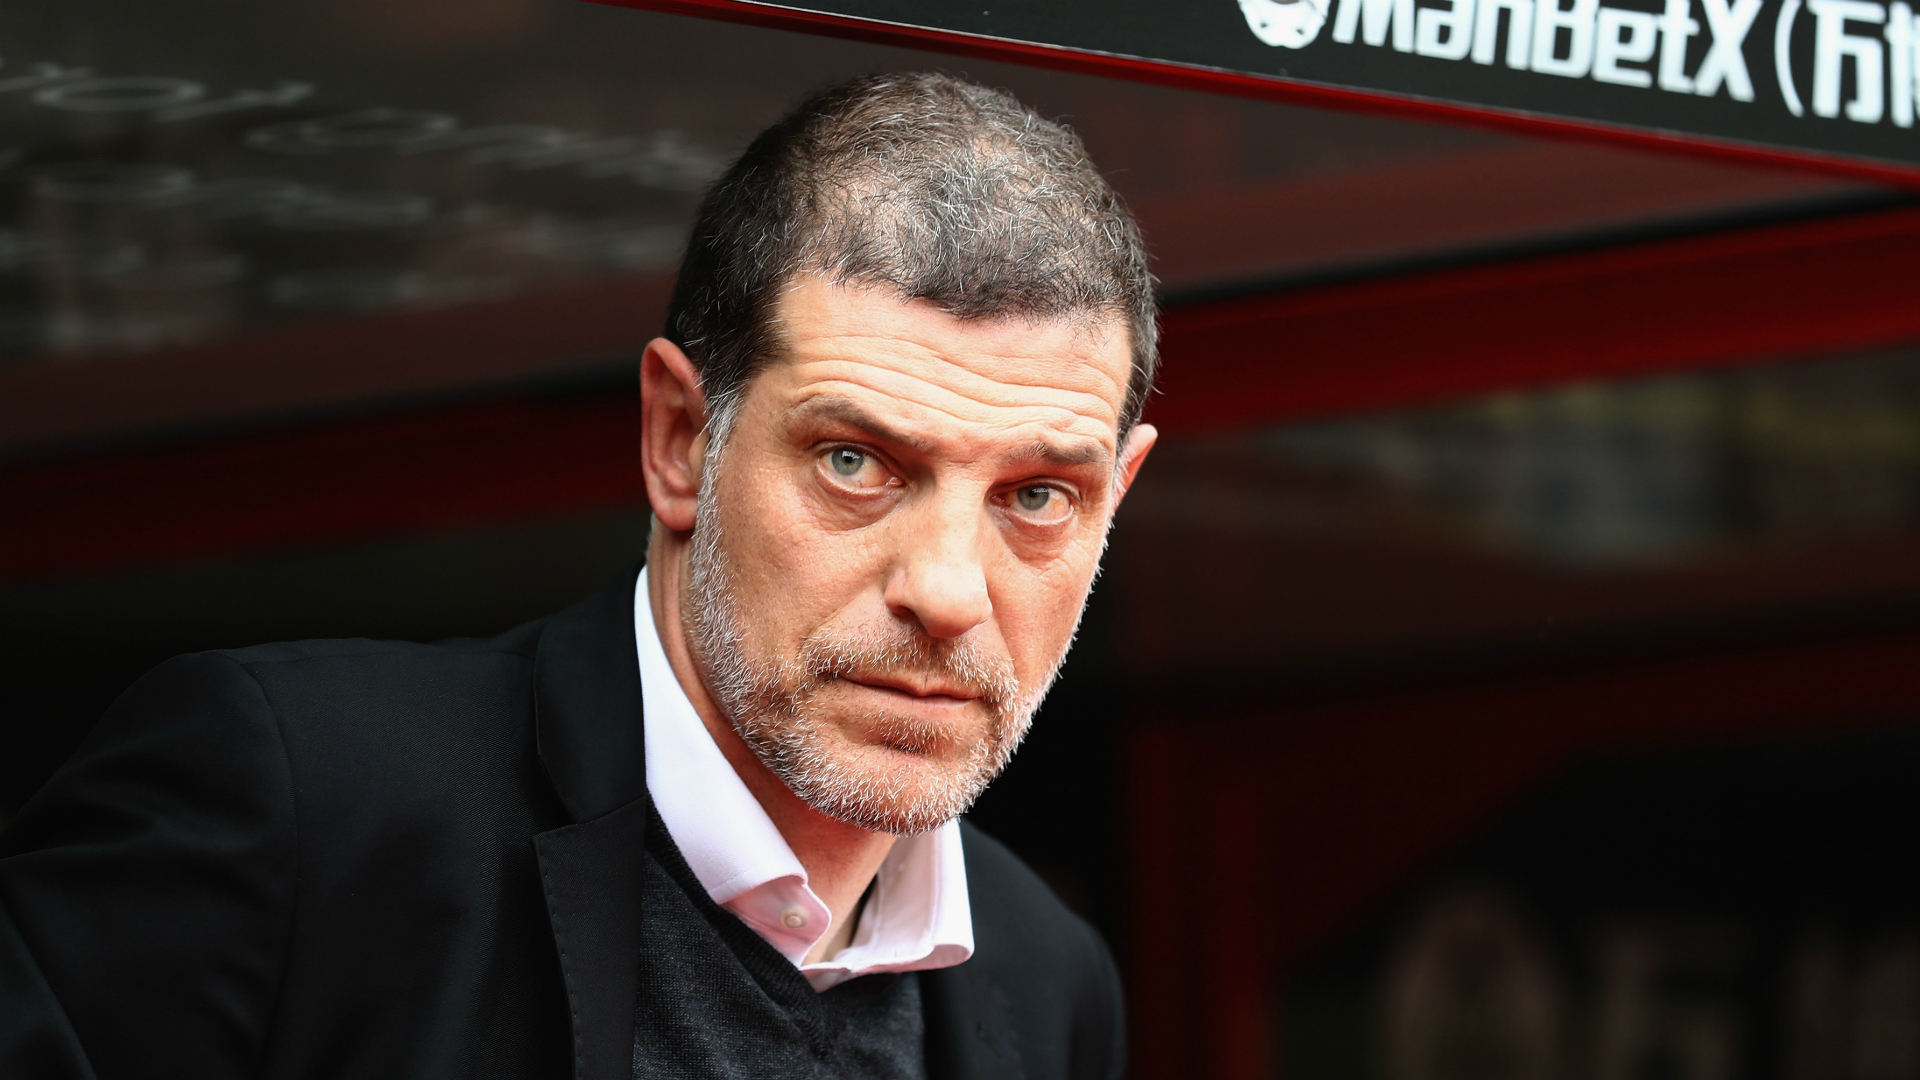 West Brom appoint Bilic as new head coach